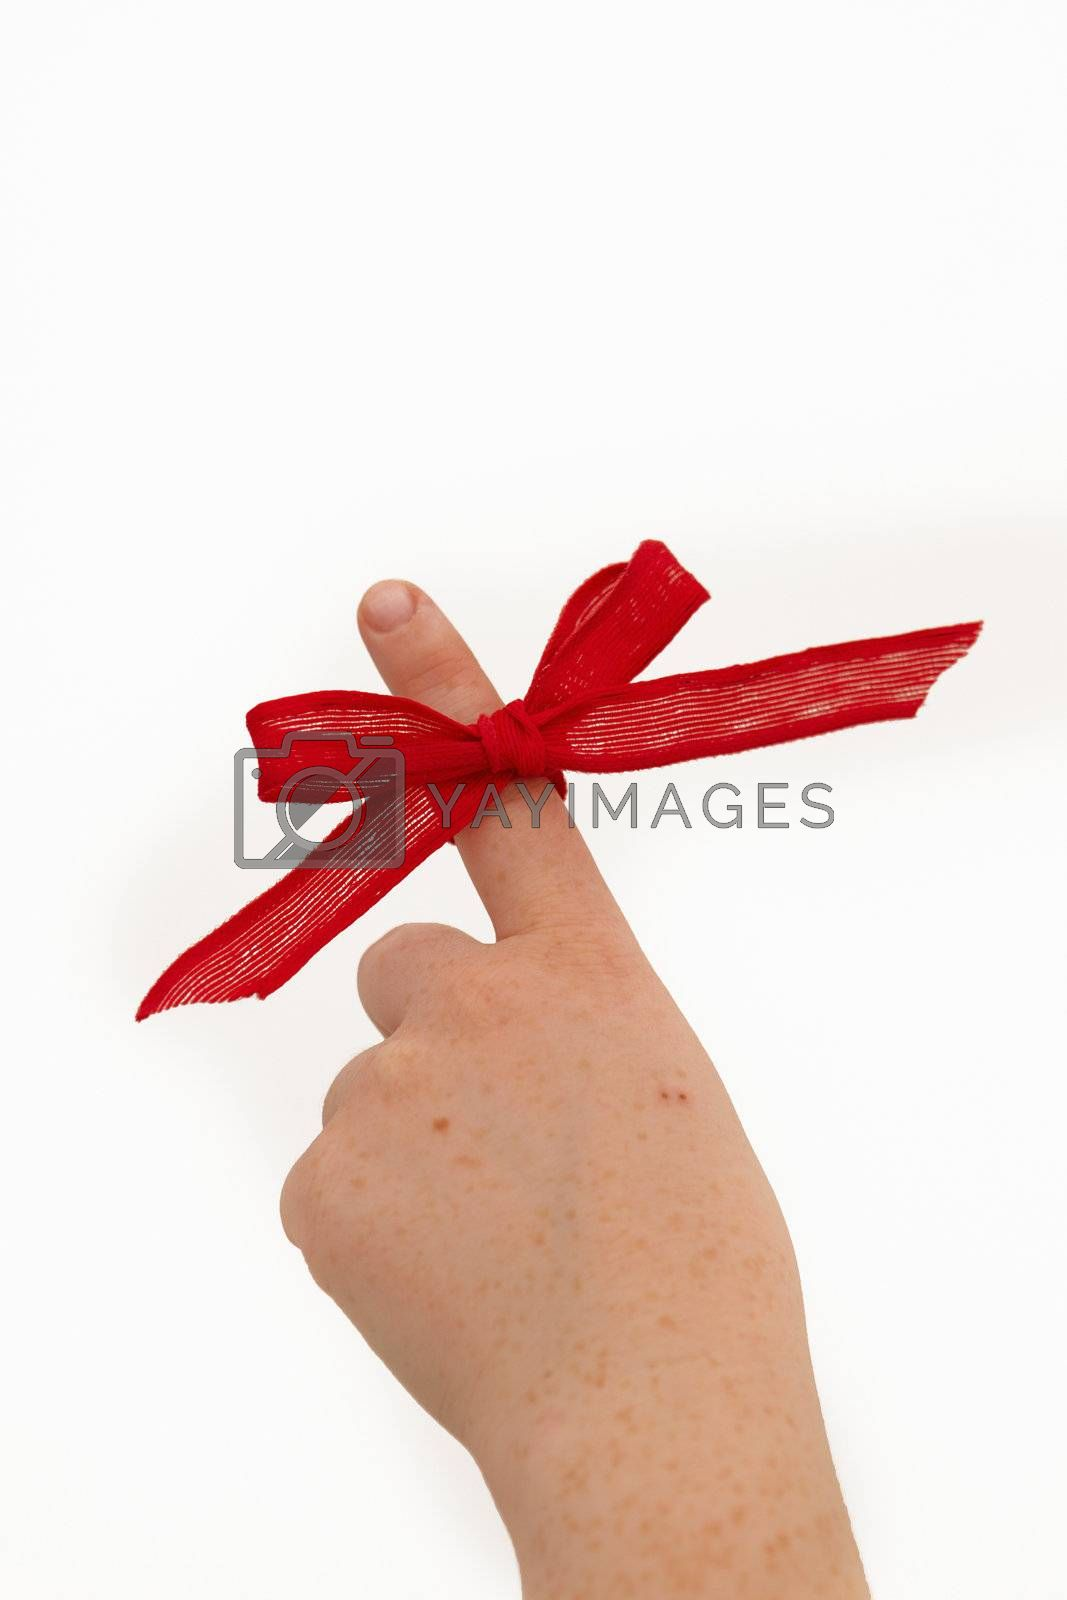 Royalty free image of Pointing a ribbon on a finger by FreedomImage